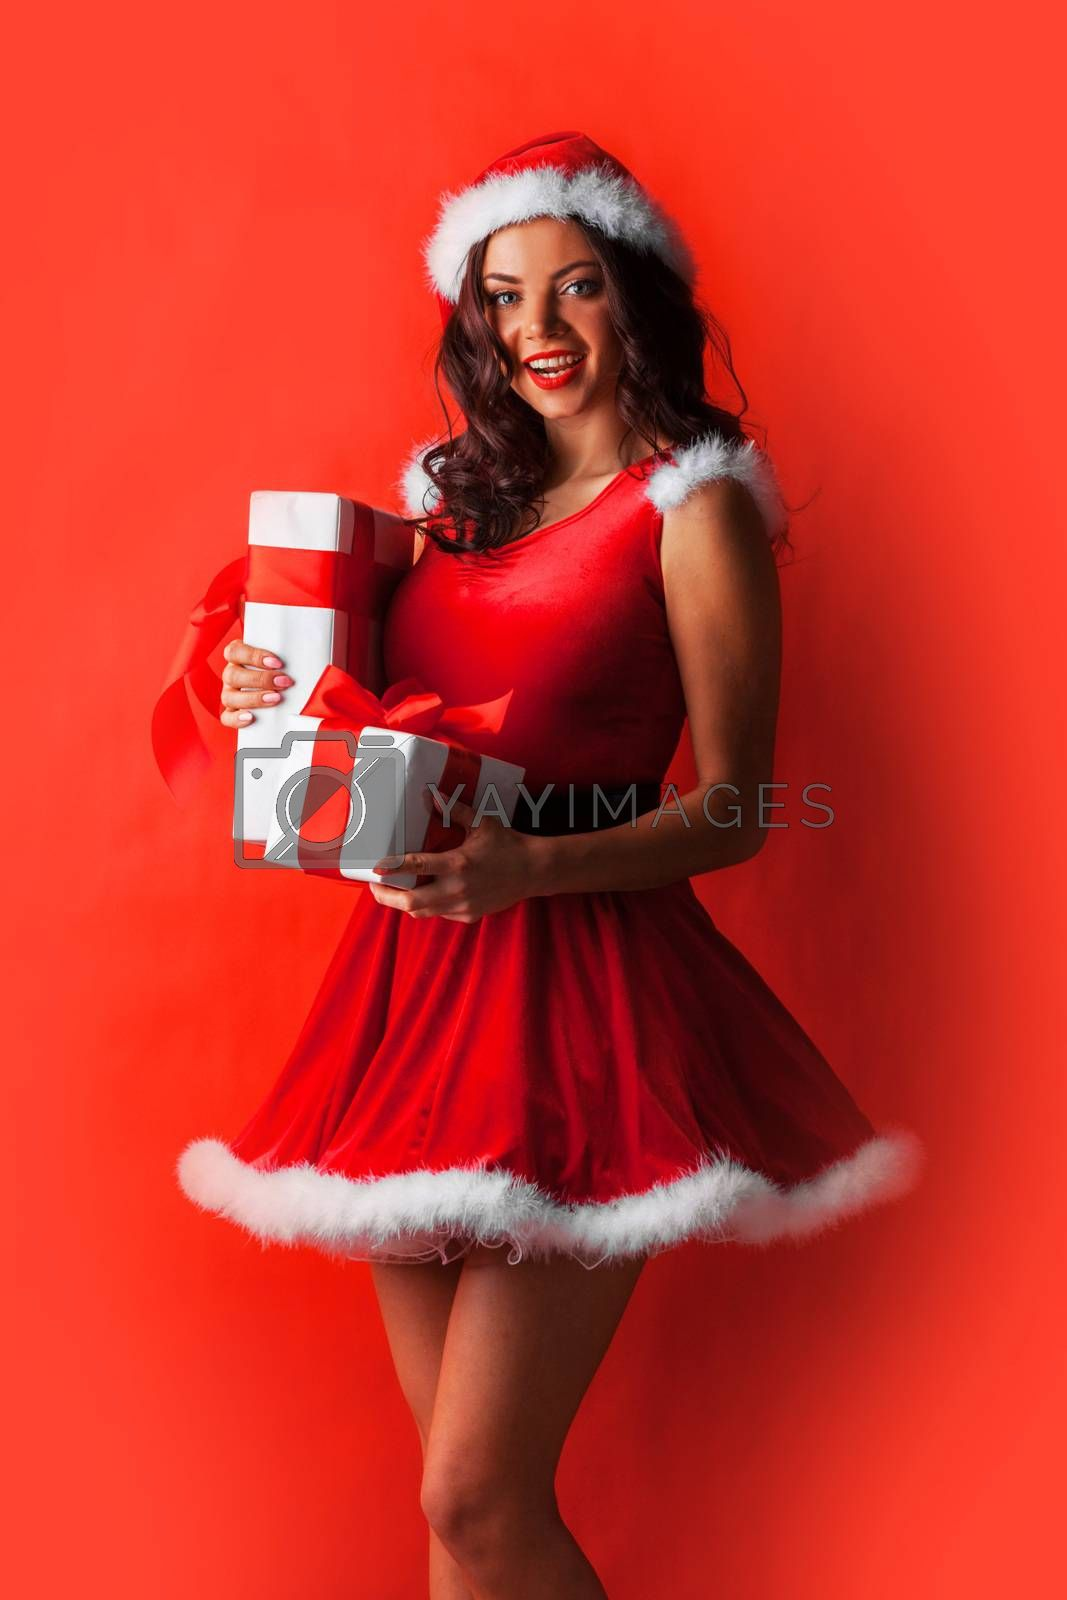 Smiling cute girl in red christmas outfit holding gift boxes